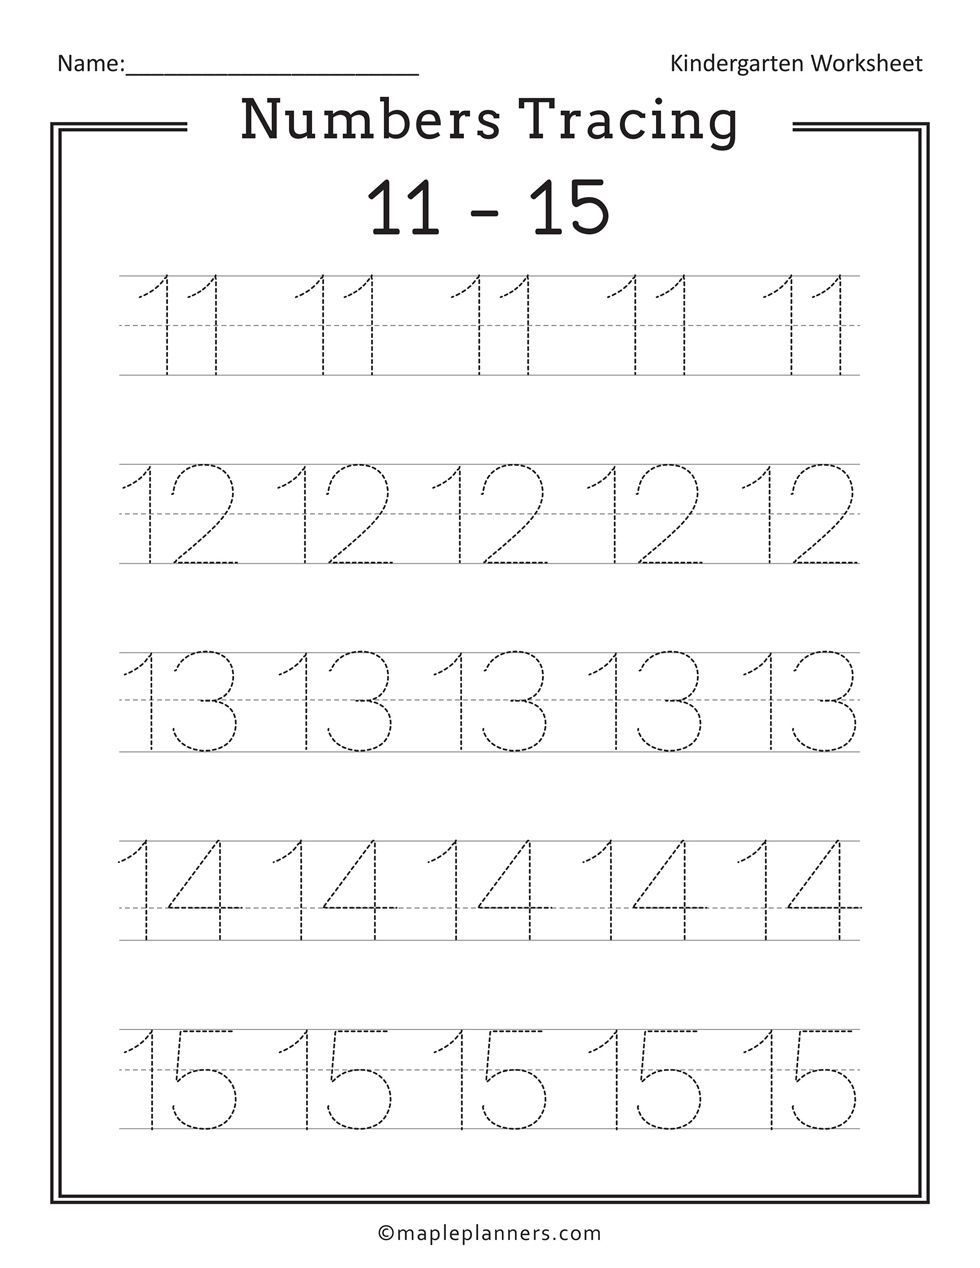 Free Printable Numbers Tracing 1 20 Worksheets For Kids In 2020 Free Printable Numbers Free Printable Handwriting Worksheets Handwriting Worksheets For Kindergarten